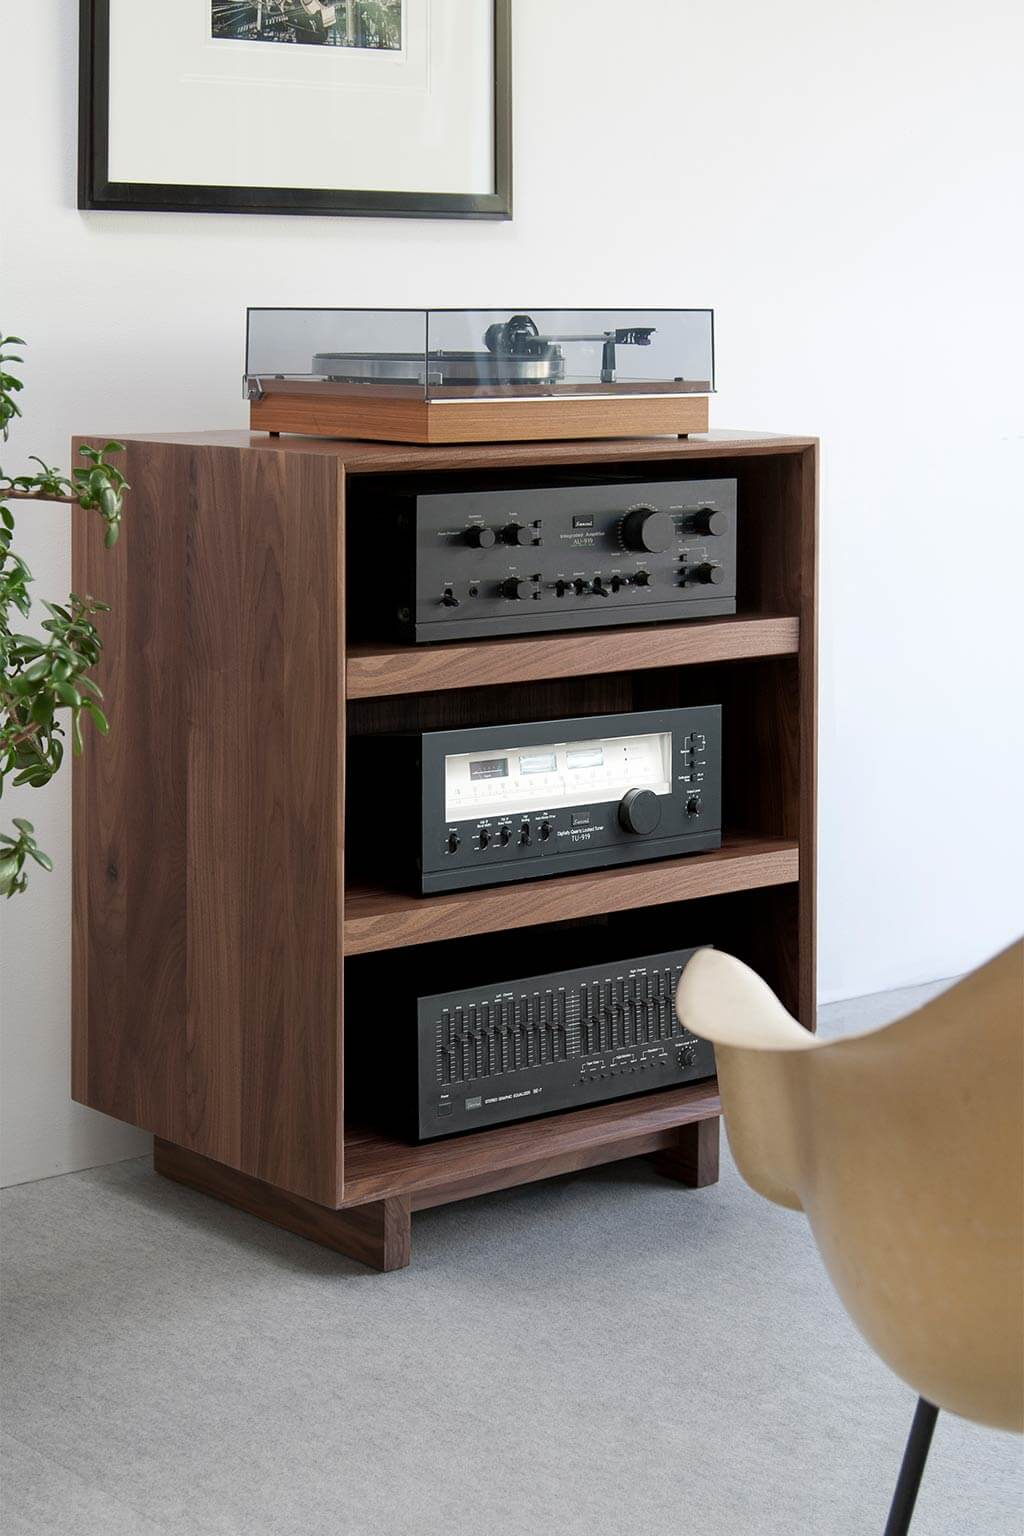 Hifi Rack Design Aero 25 5 Audio Rack Wooden Audio Rack Symbol Audio